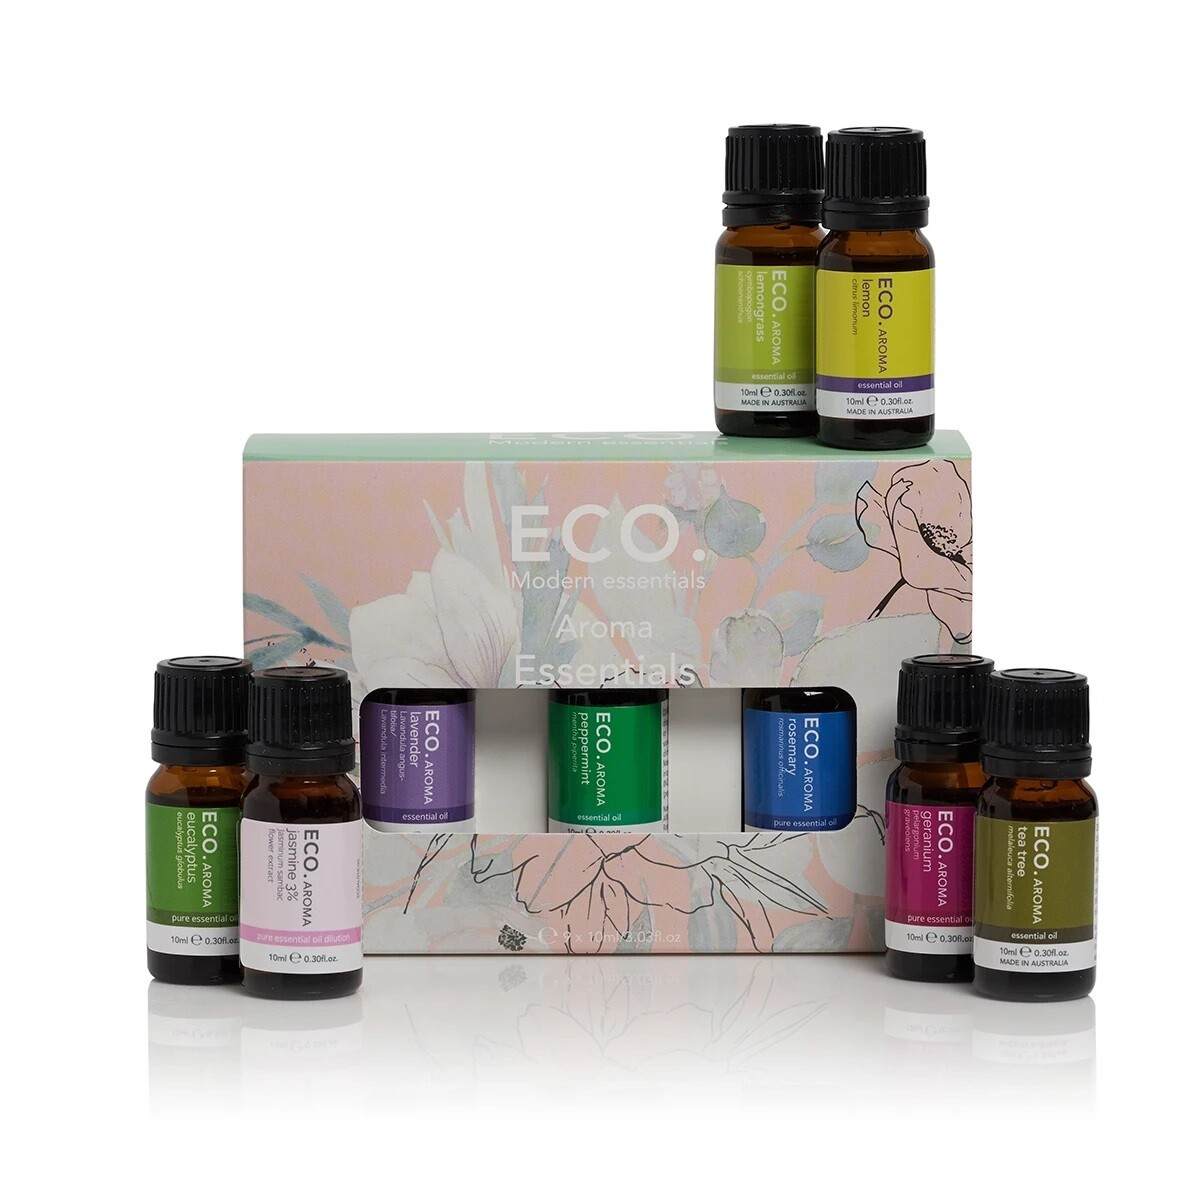 ECO. Aroma Essentials 9 Pack (9x 10ml Essential Oils)